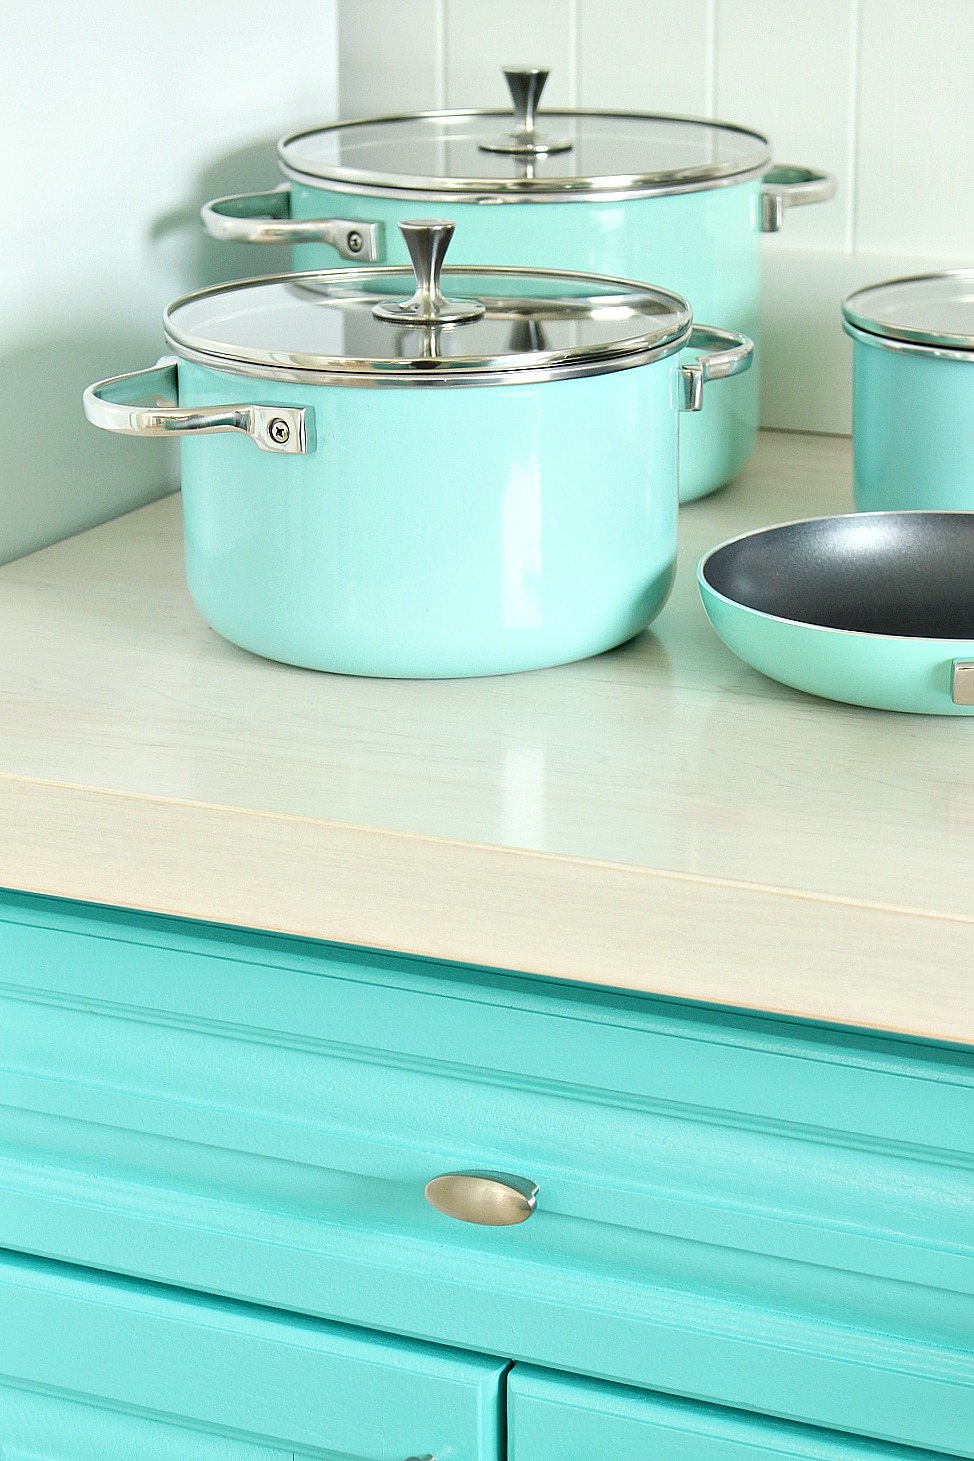 Turquoise Cabinets and Turquoise Pots